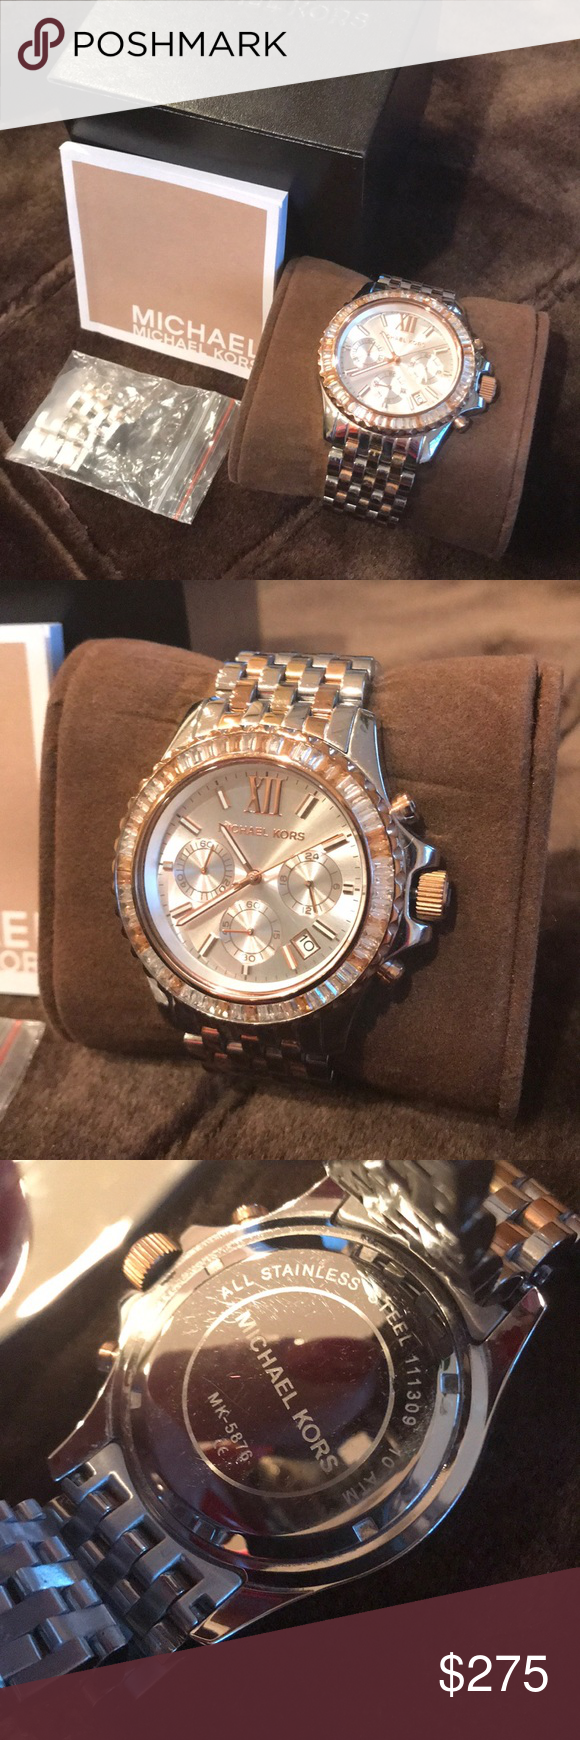 Michael Kors Chronograph Watch Stunning Pinterest